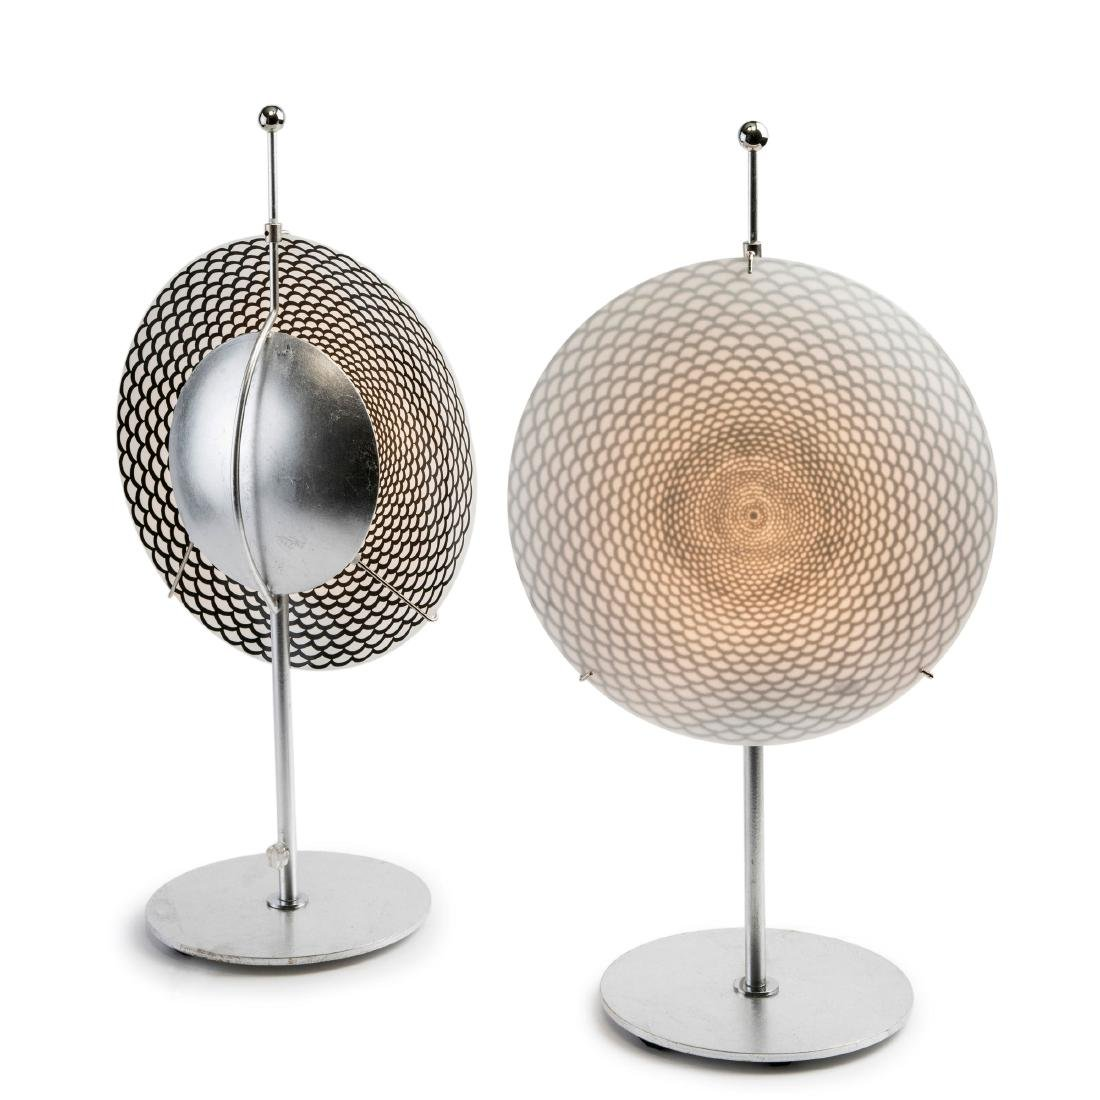 Two 'Ottica' table lights, c. 1995